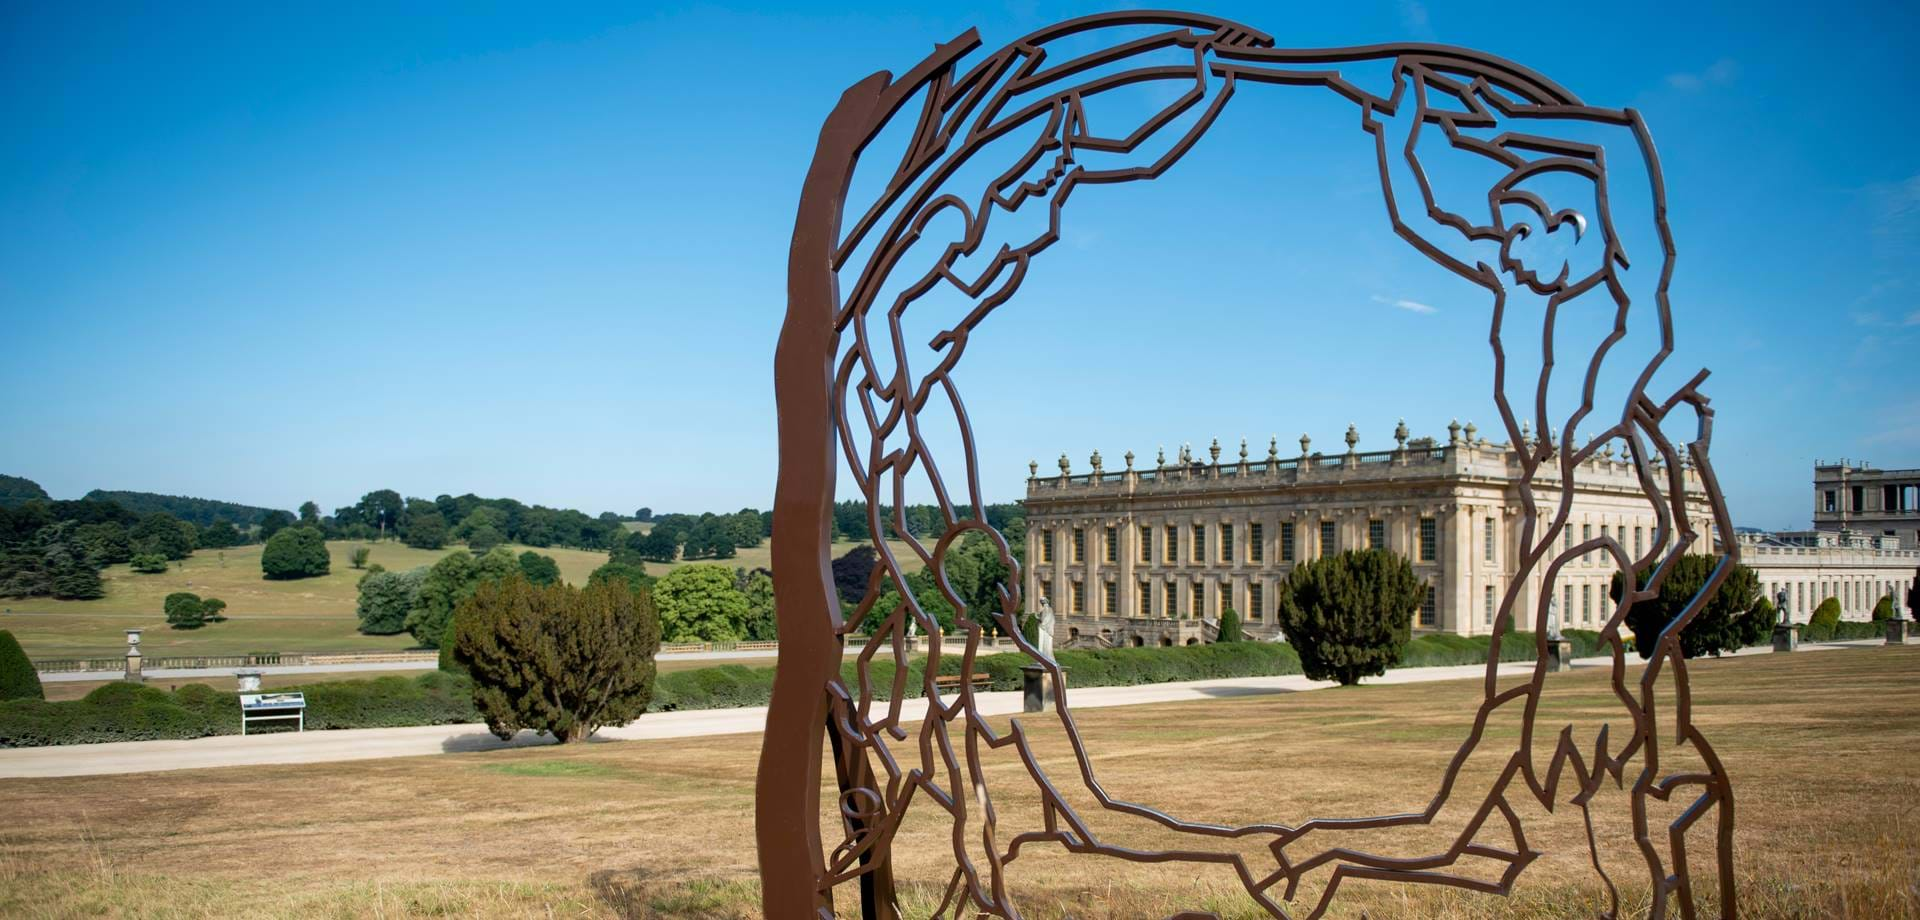 Linder's 'Bower of Bliss' Revealed at Chatsworth